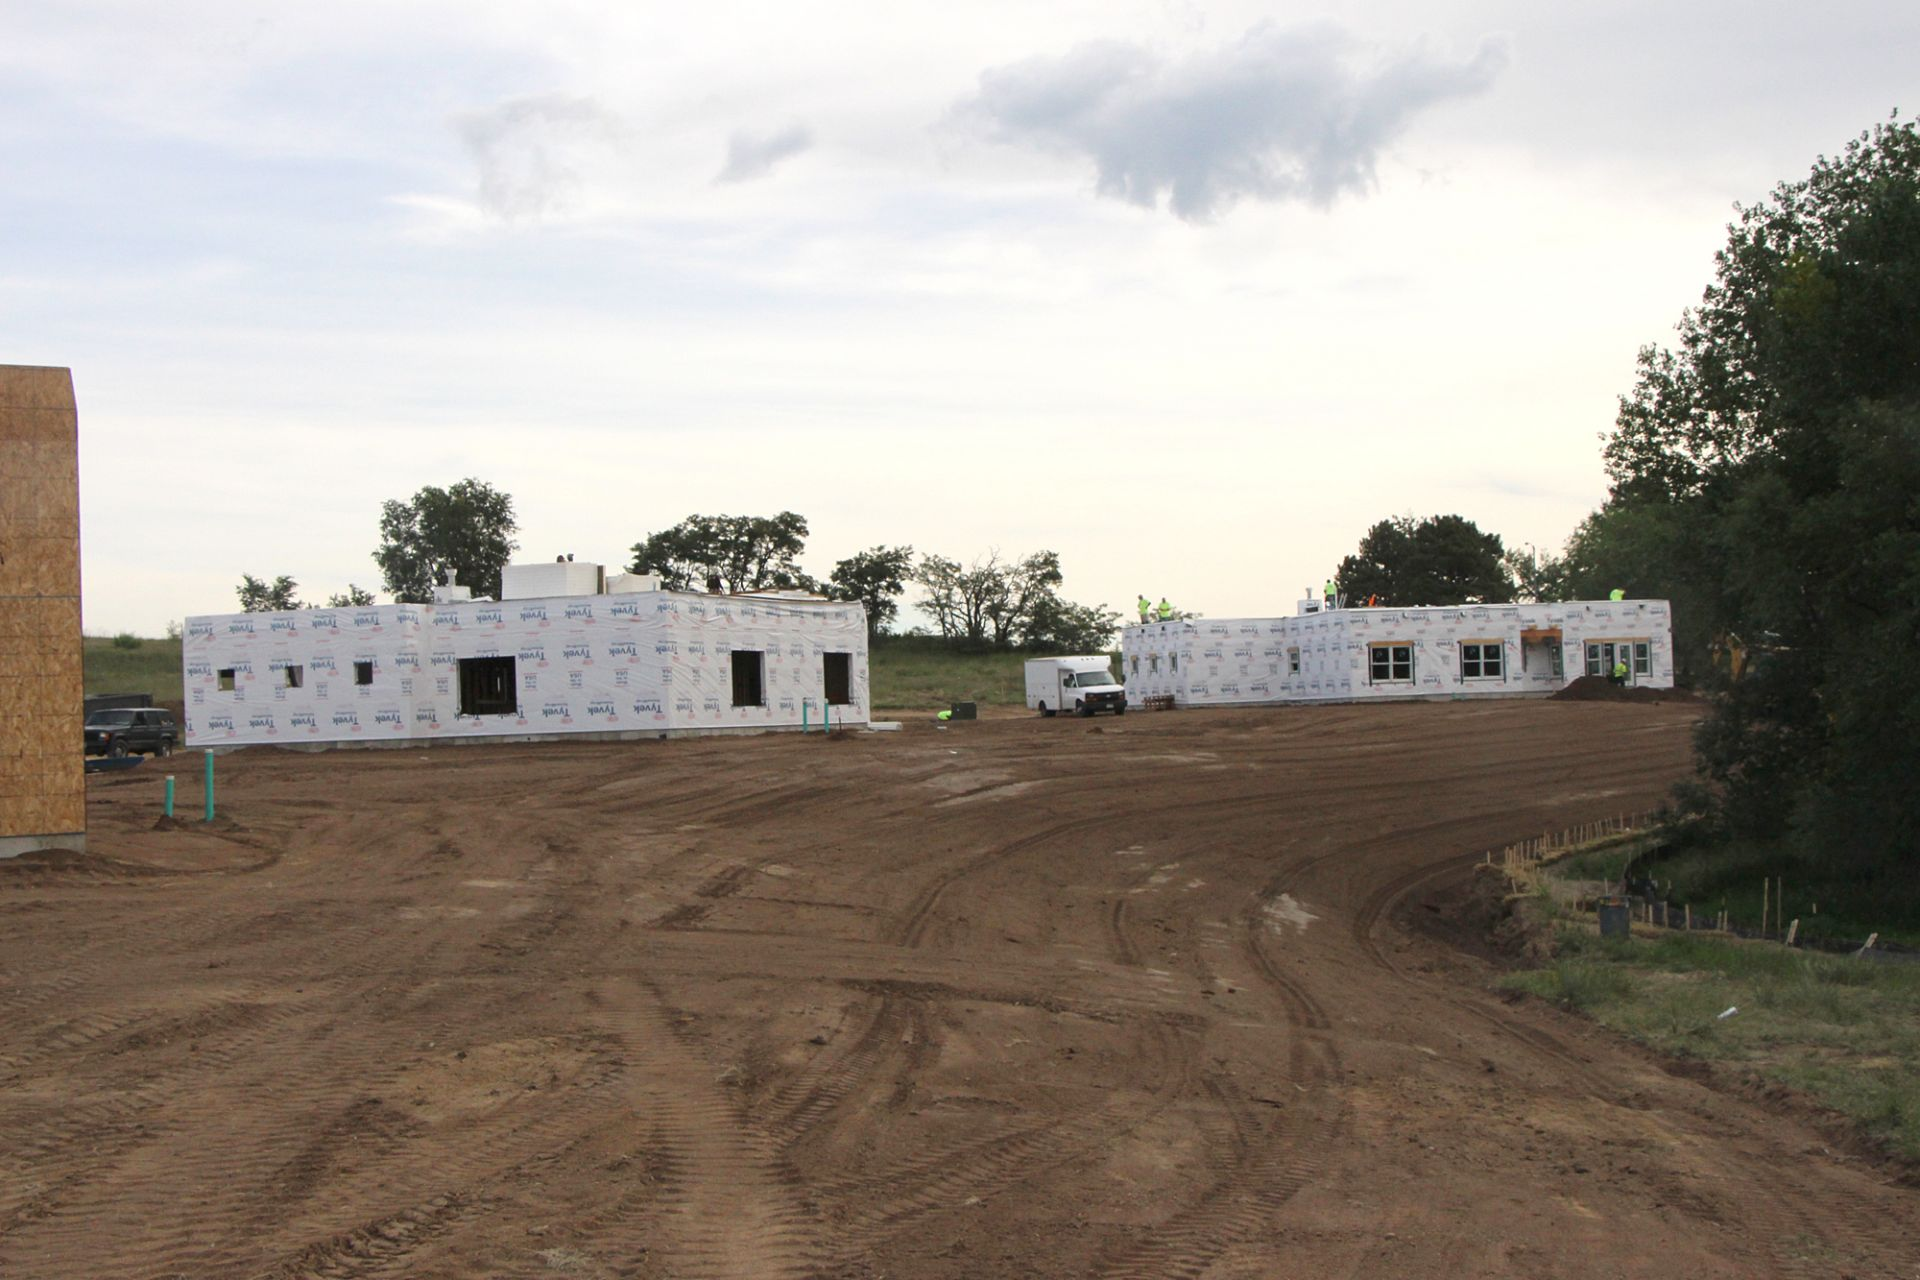 Late August photos of the new faculty housing (including a duplex) on the north side of campus, near the back gate.